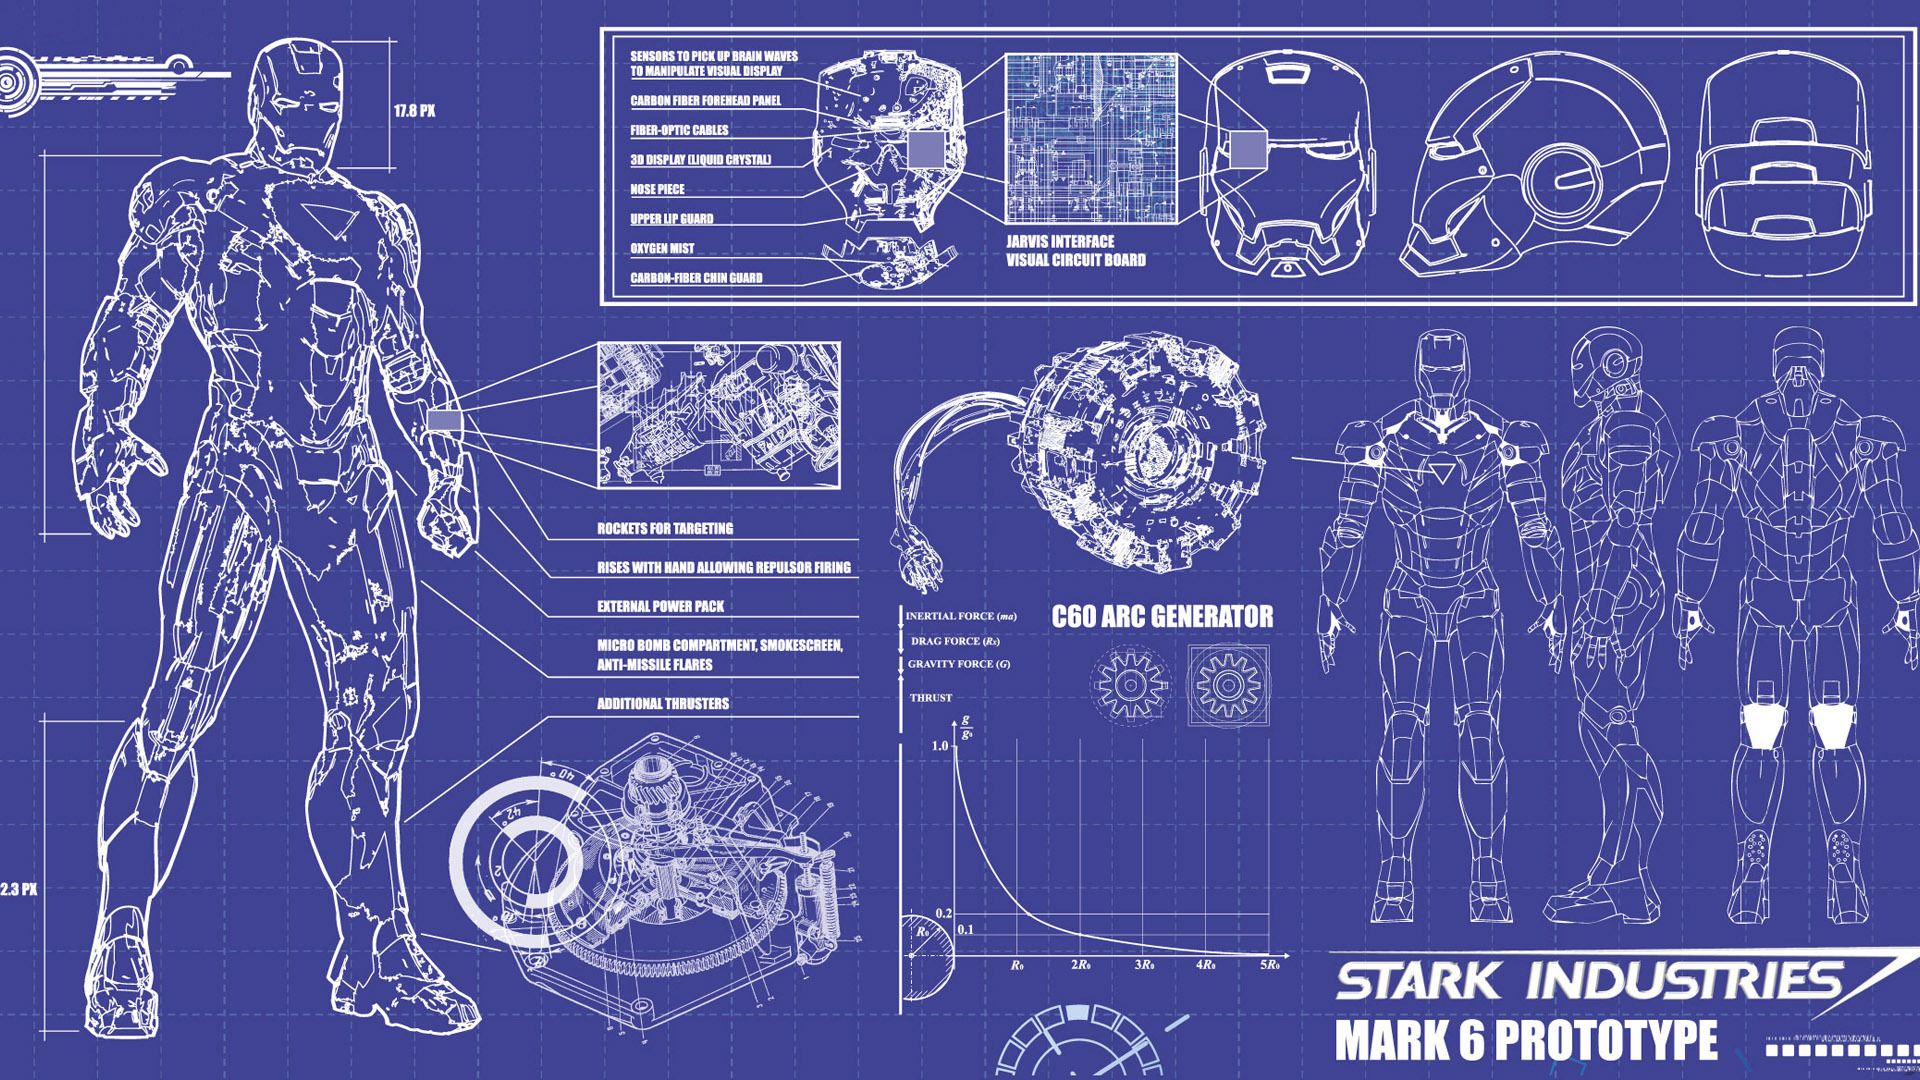 Iron Man Blueprint Hd Wallpapers Image Hd Wallpapers Image 3d